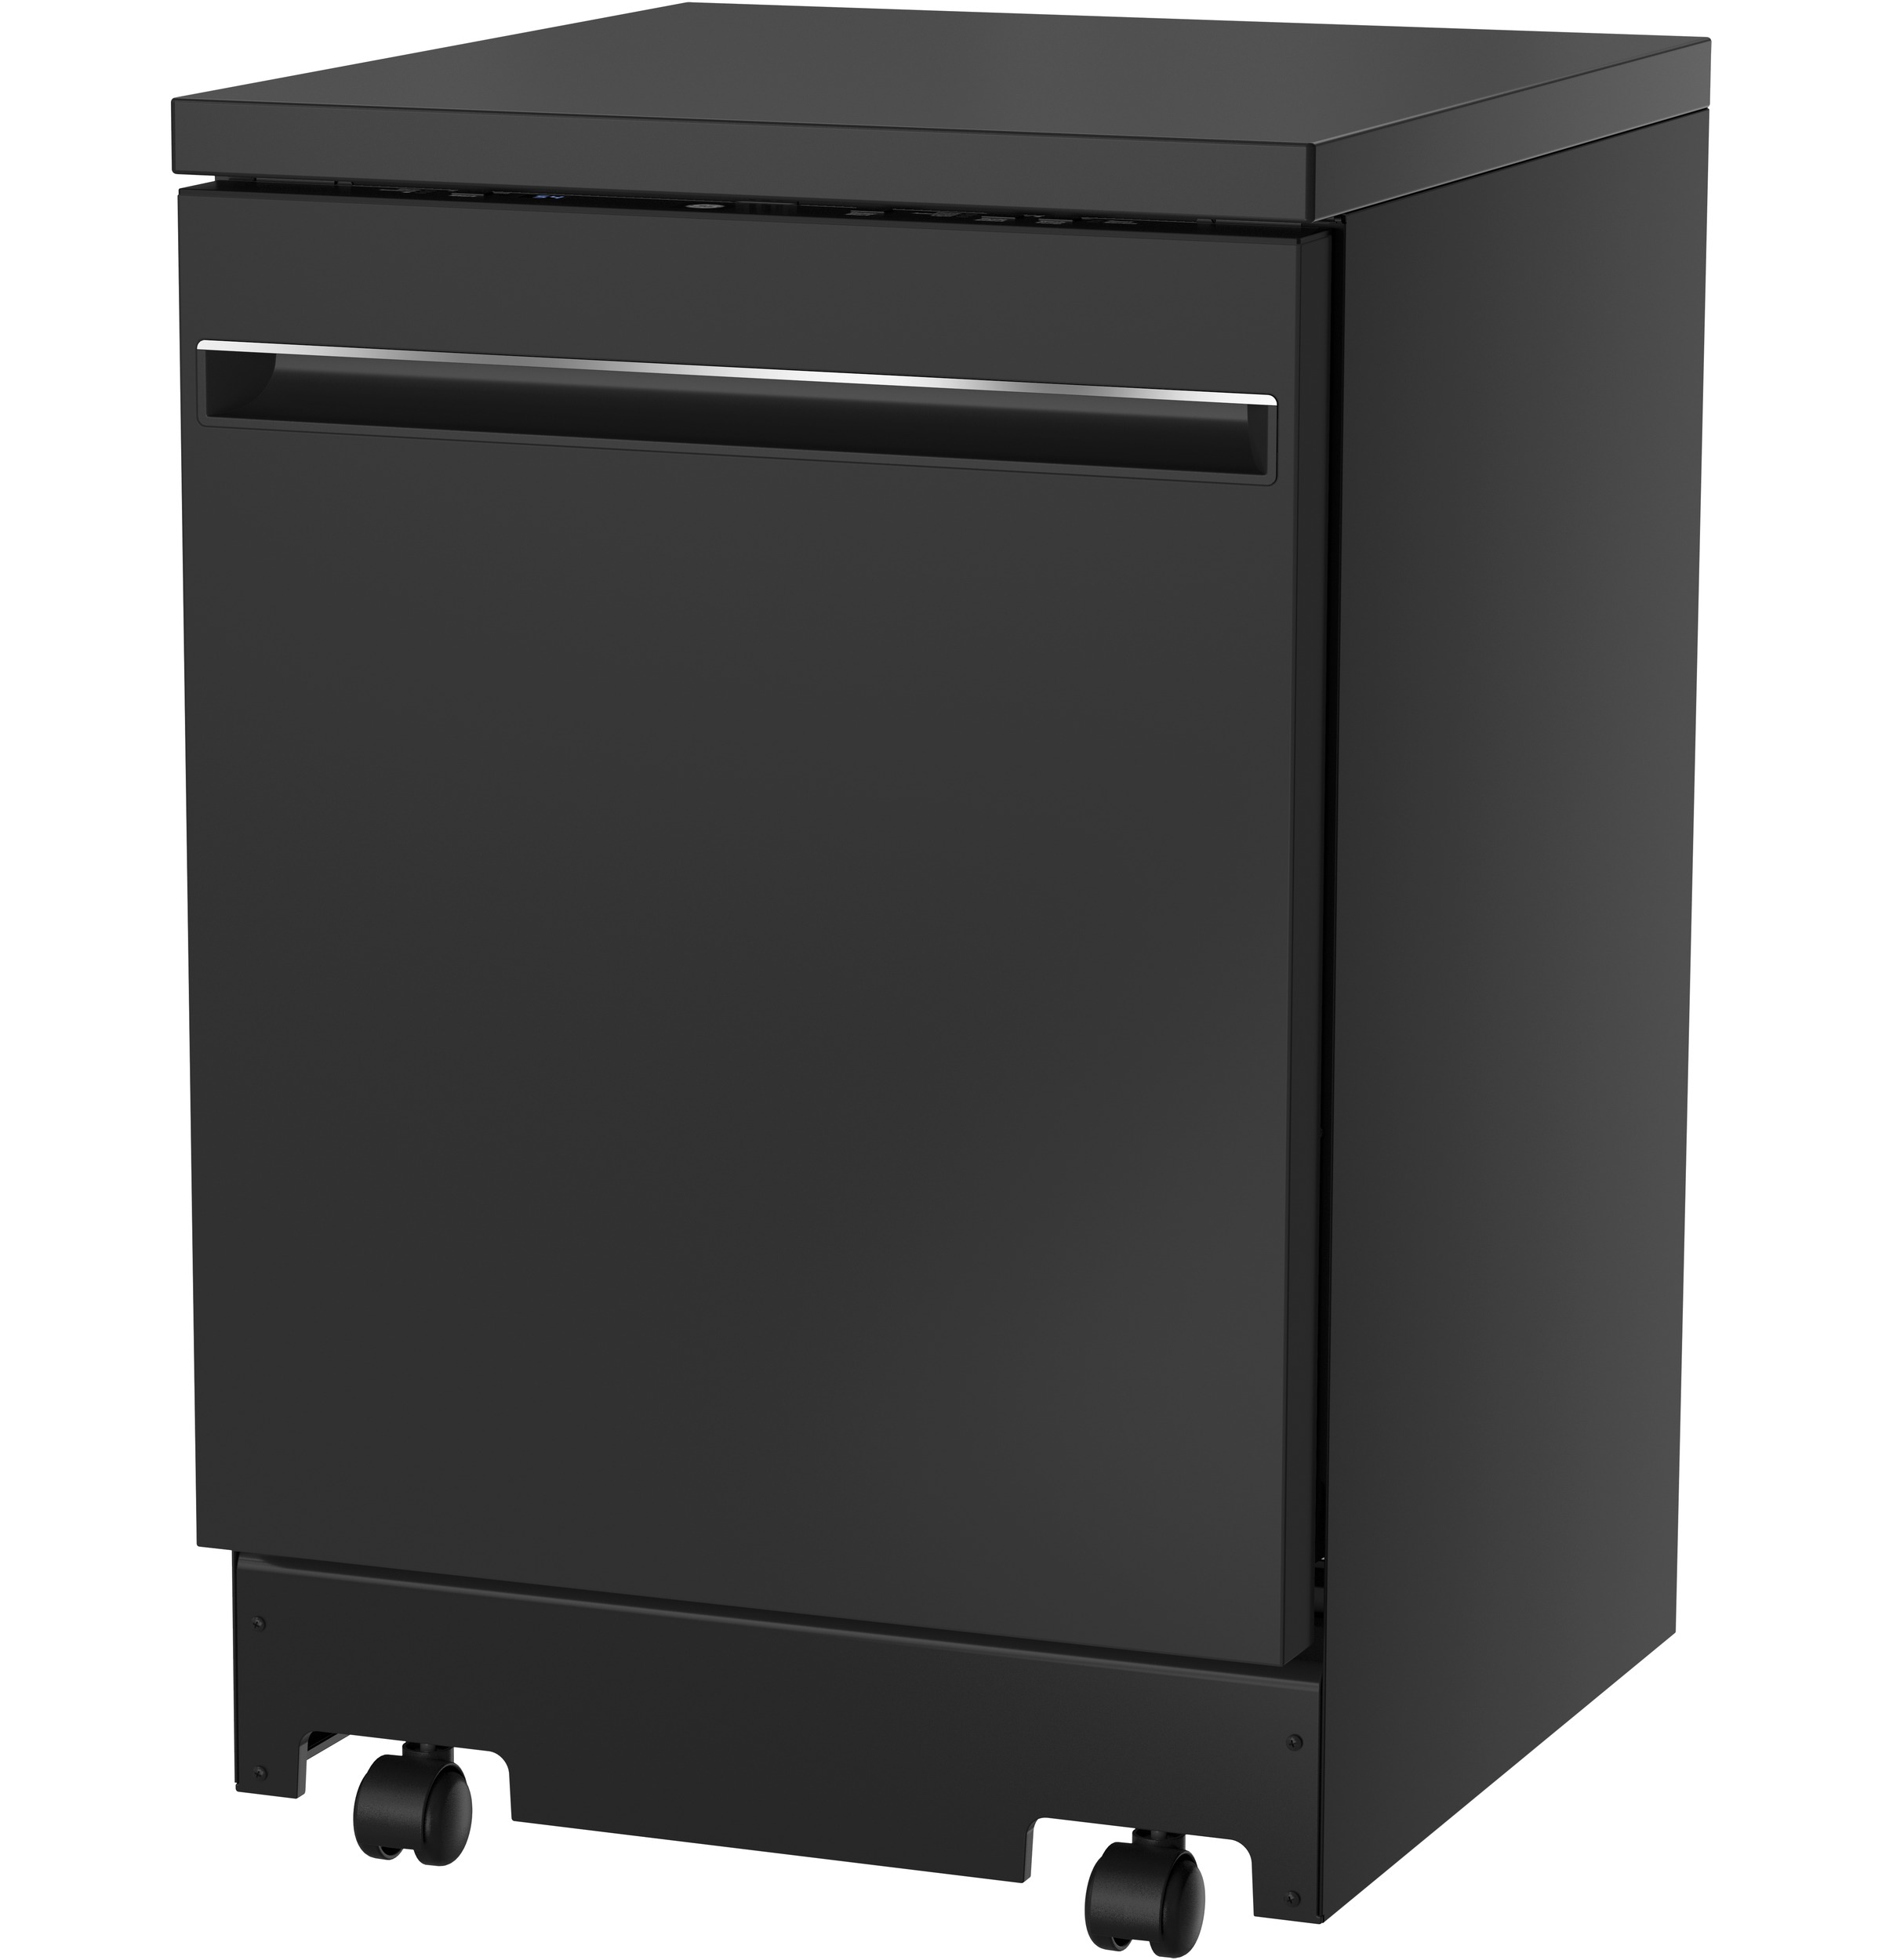 """Model: GPT225SGLBB   GE GE® 24"""" Stainless Steel Interior Portable Dishwasher with Sanitize Cycle"""